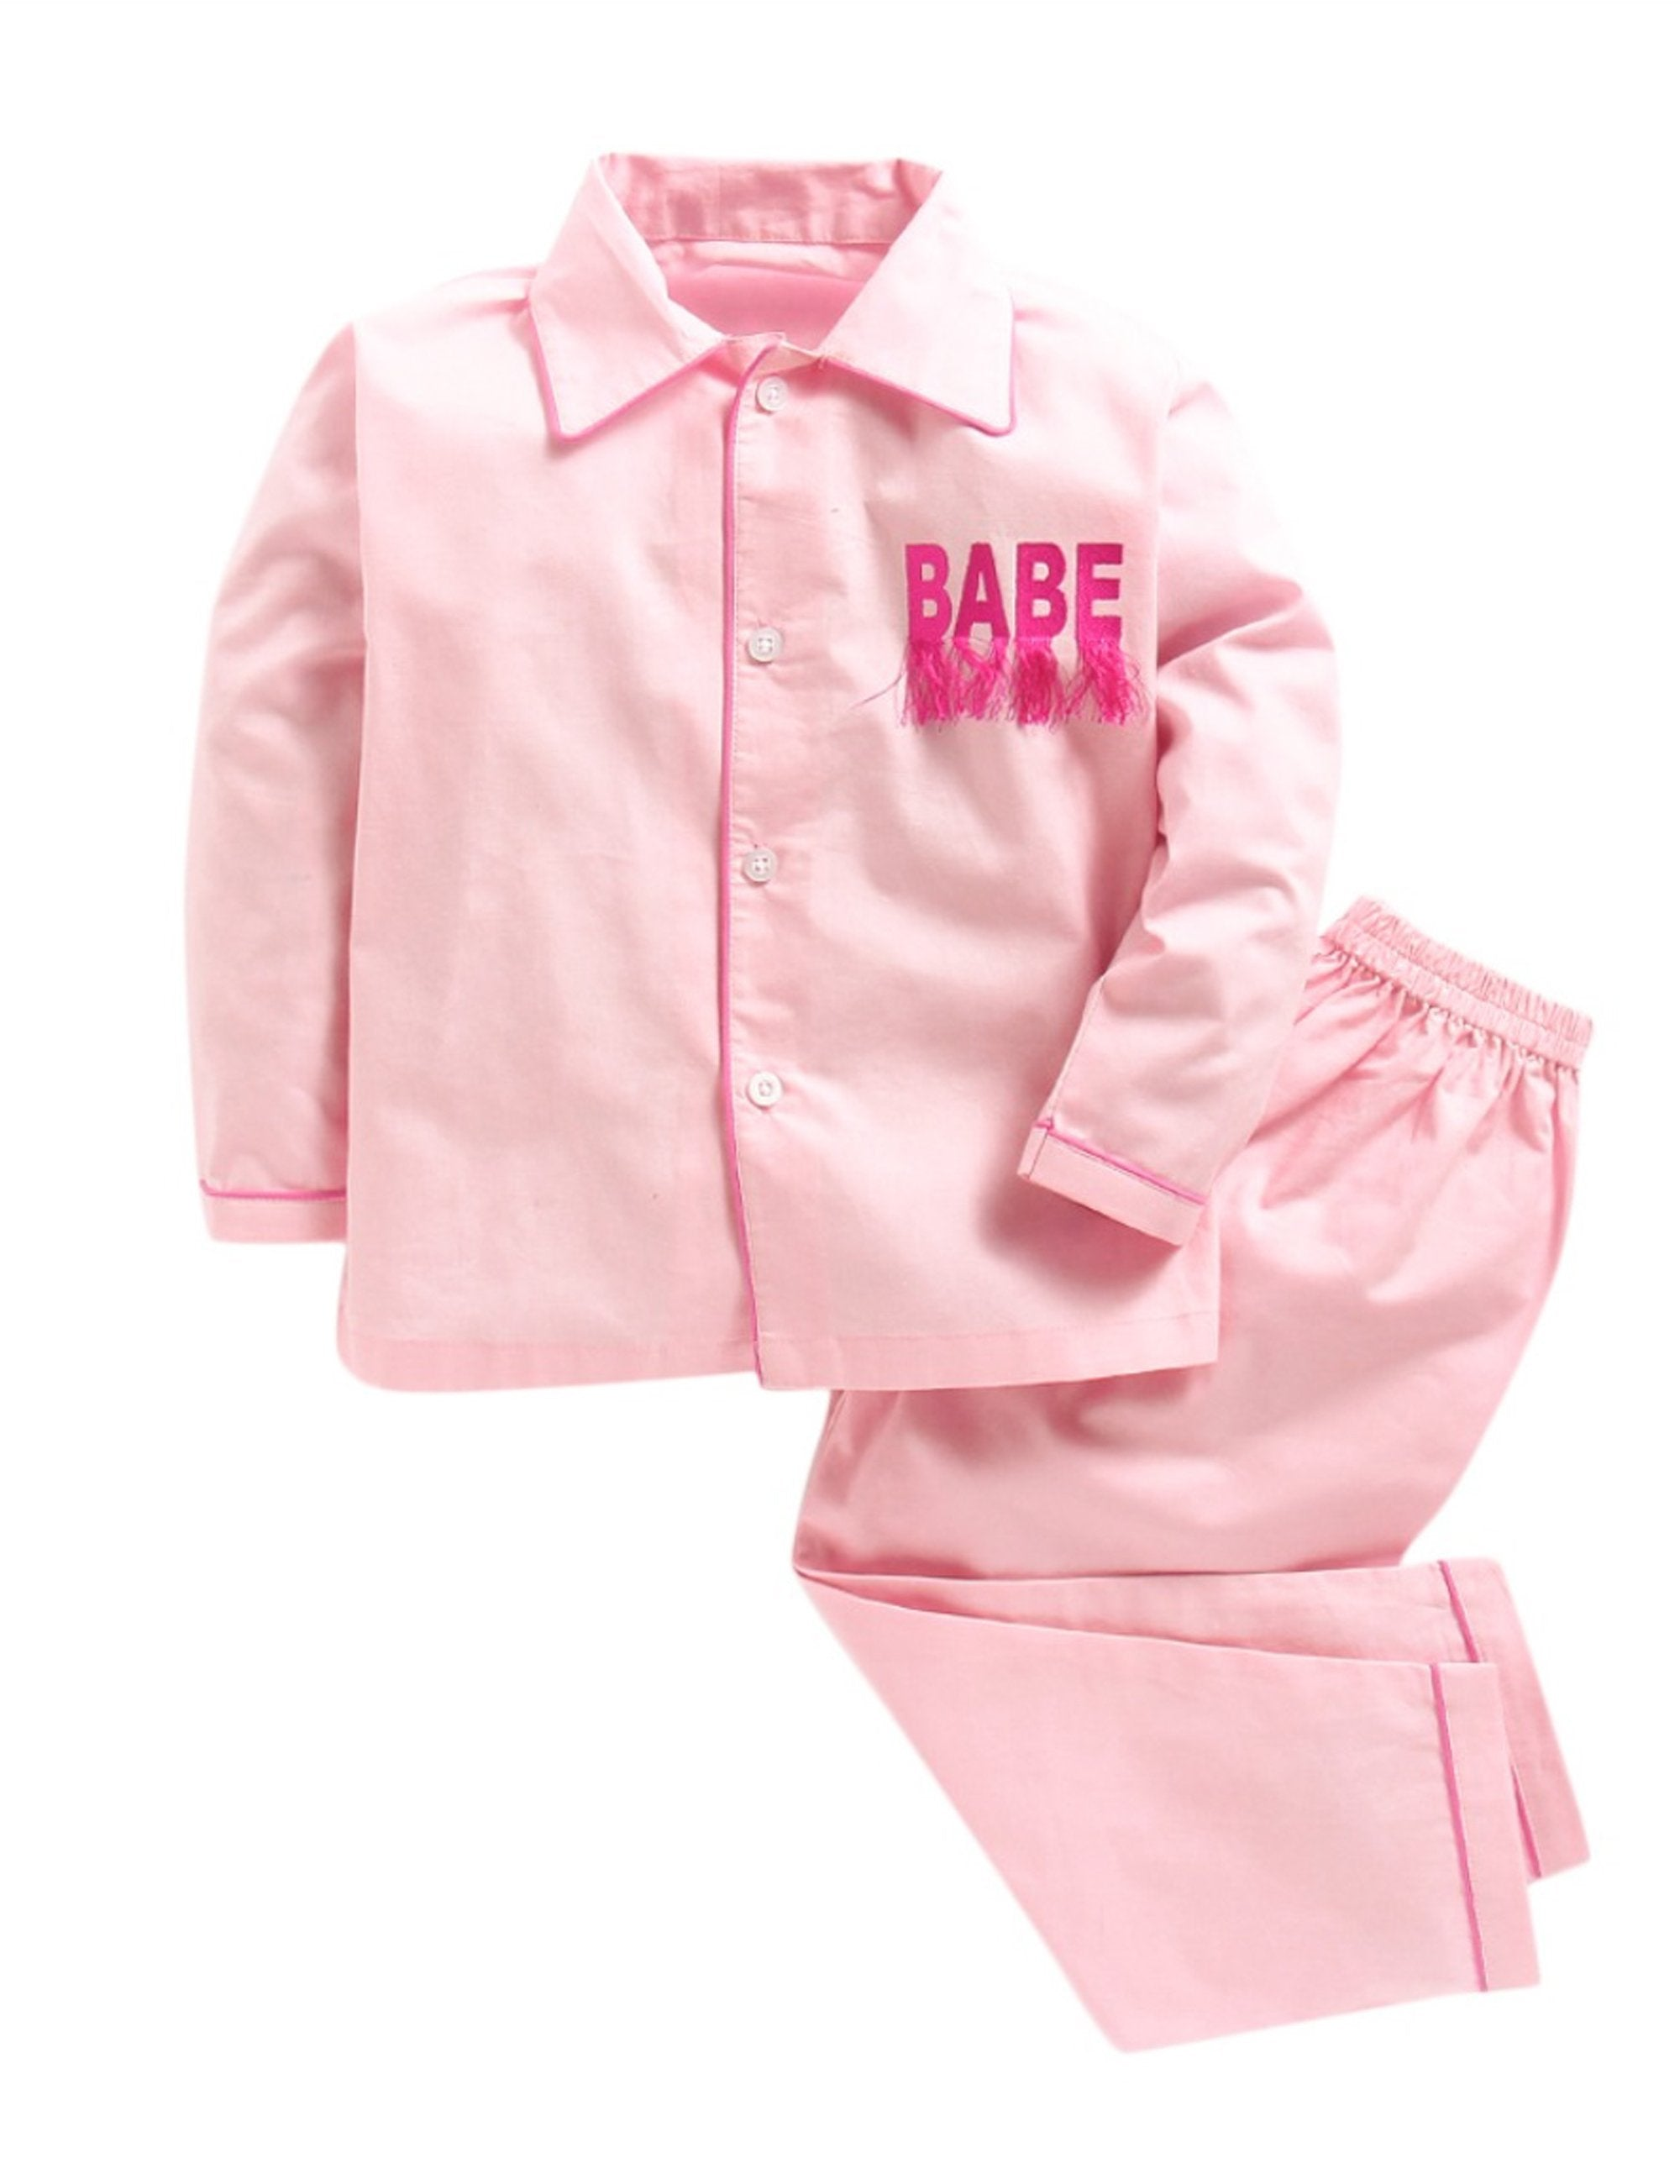 Plain Pink BABE Nightwear